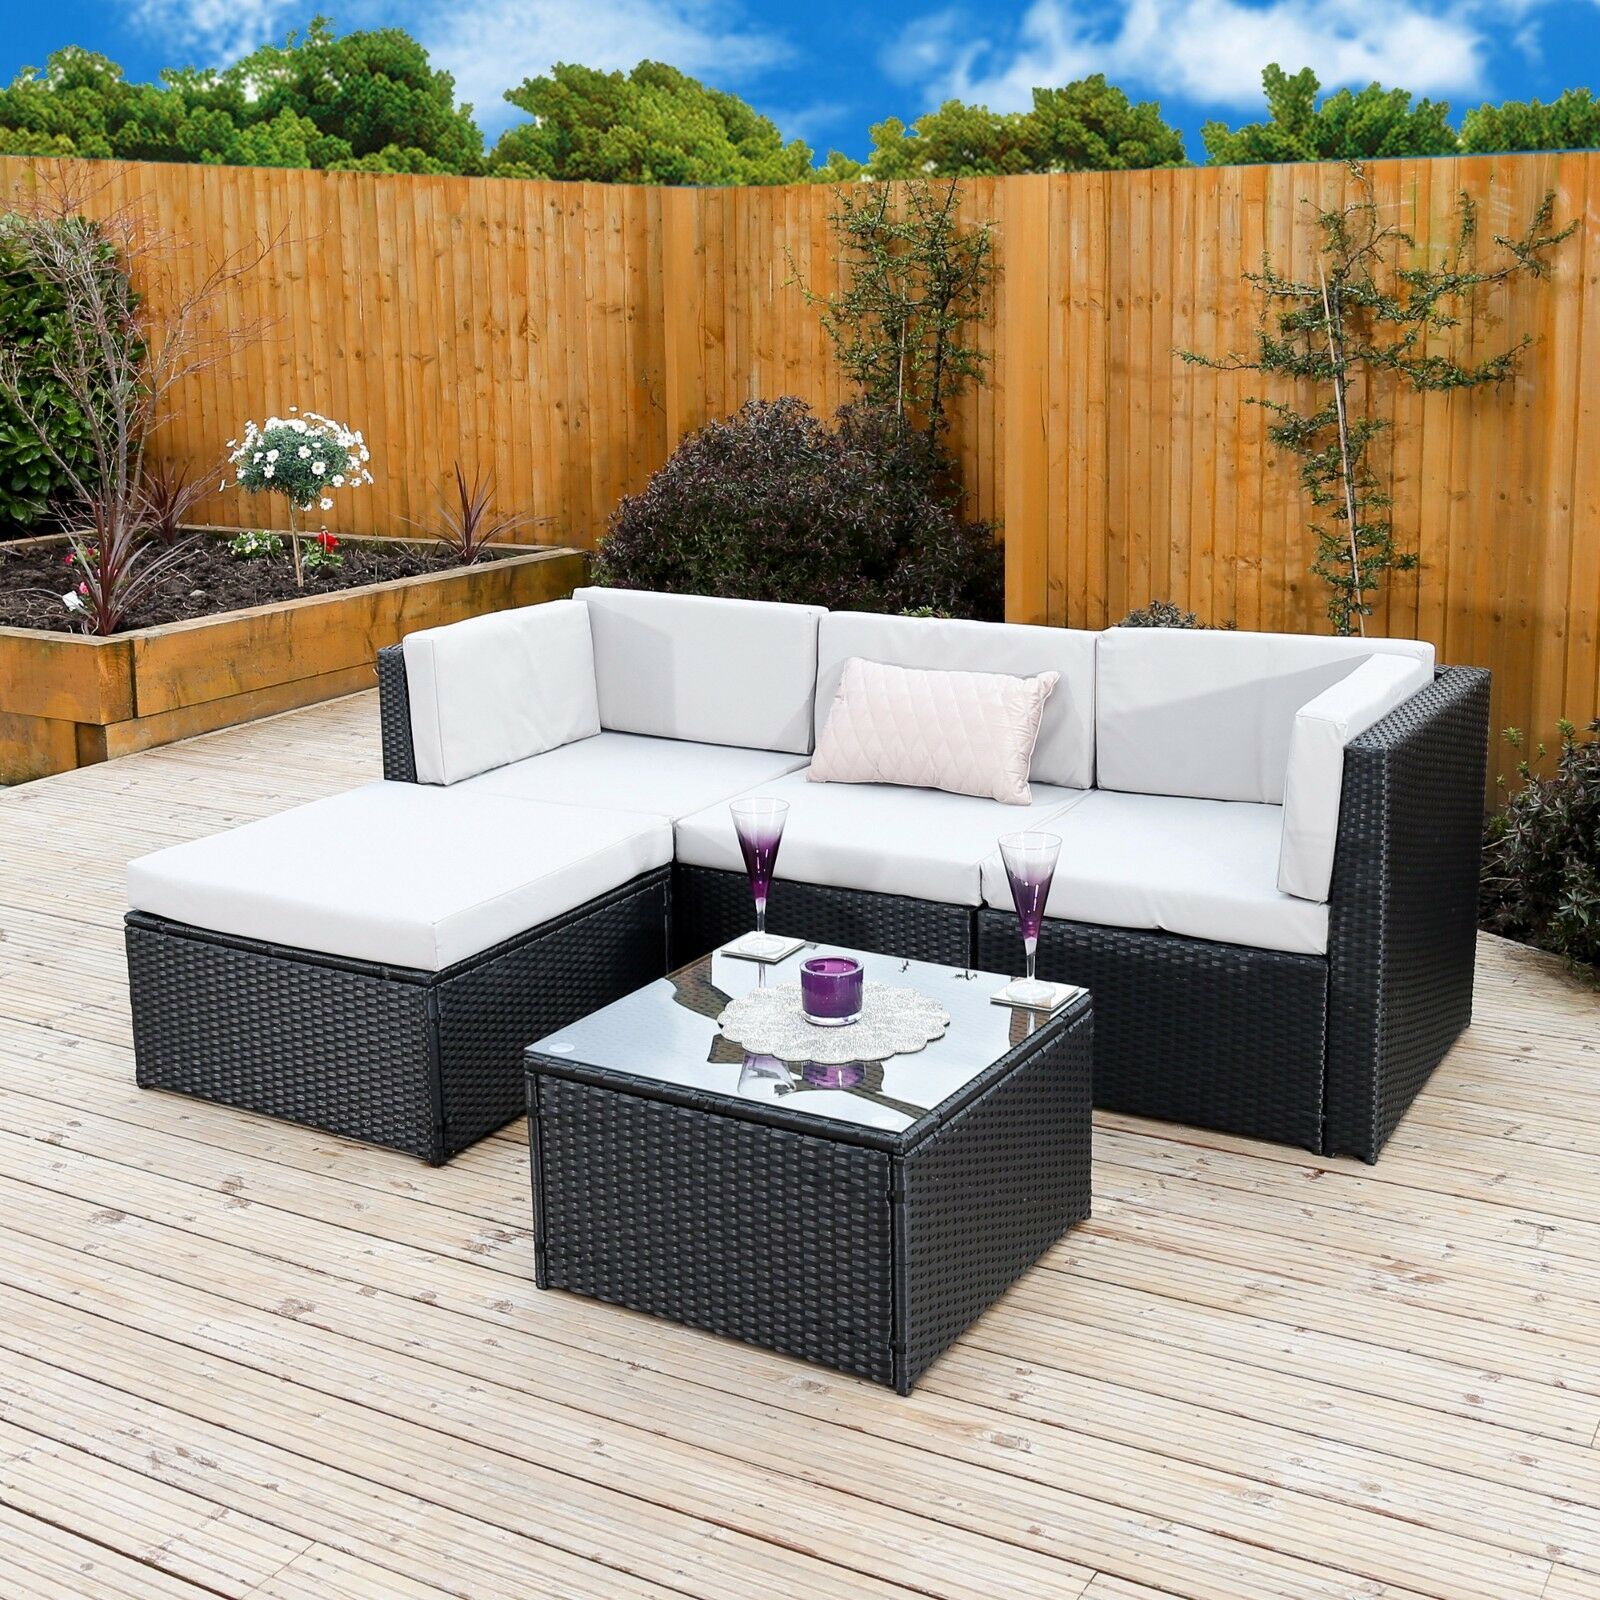 Modular Black Rattan Weave Garden Furniture Sofa Table Set